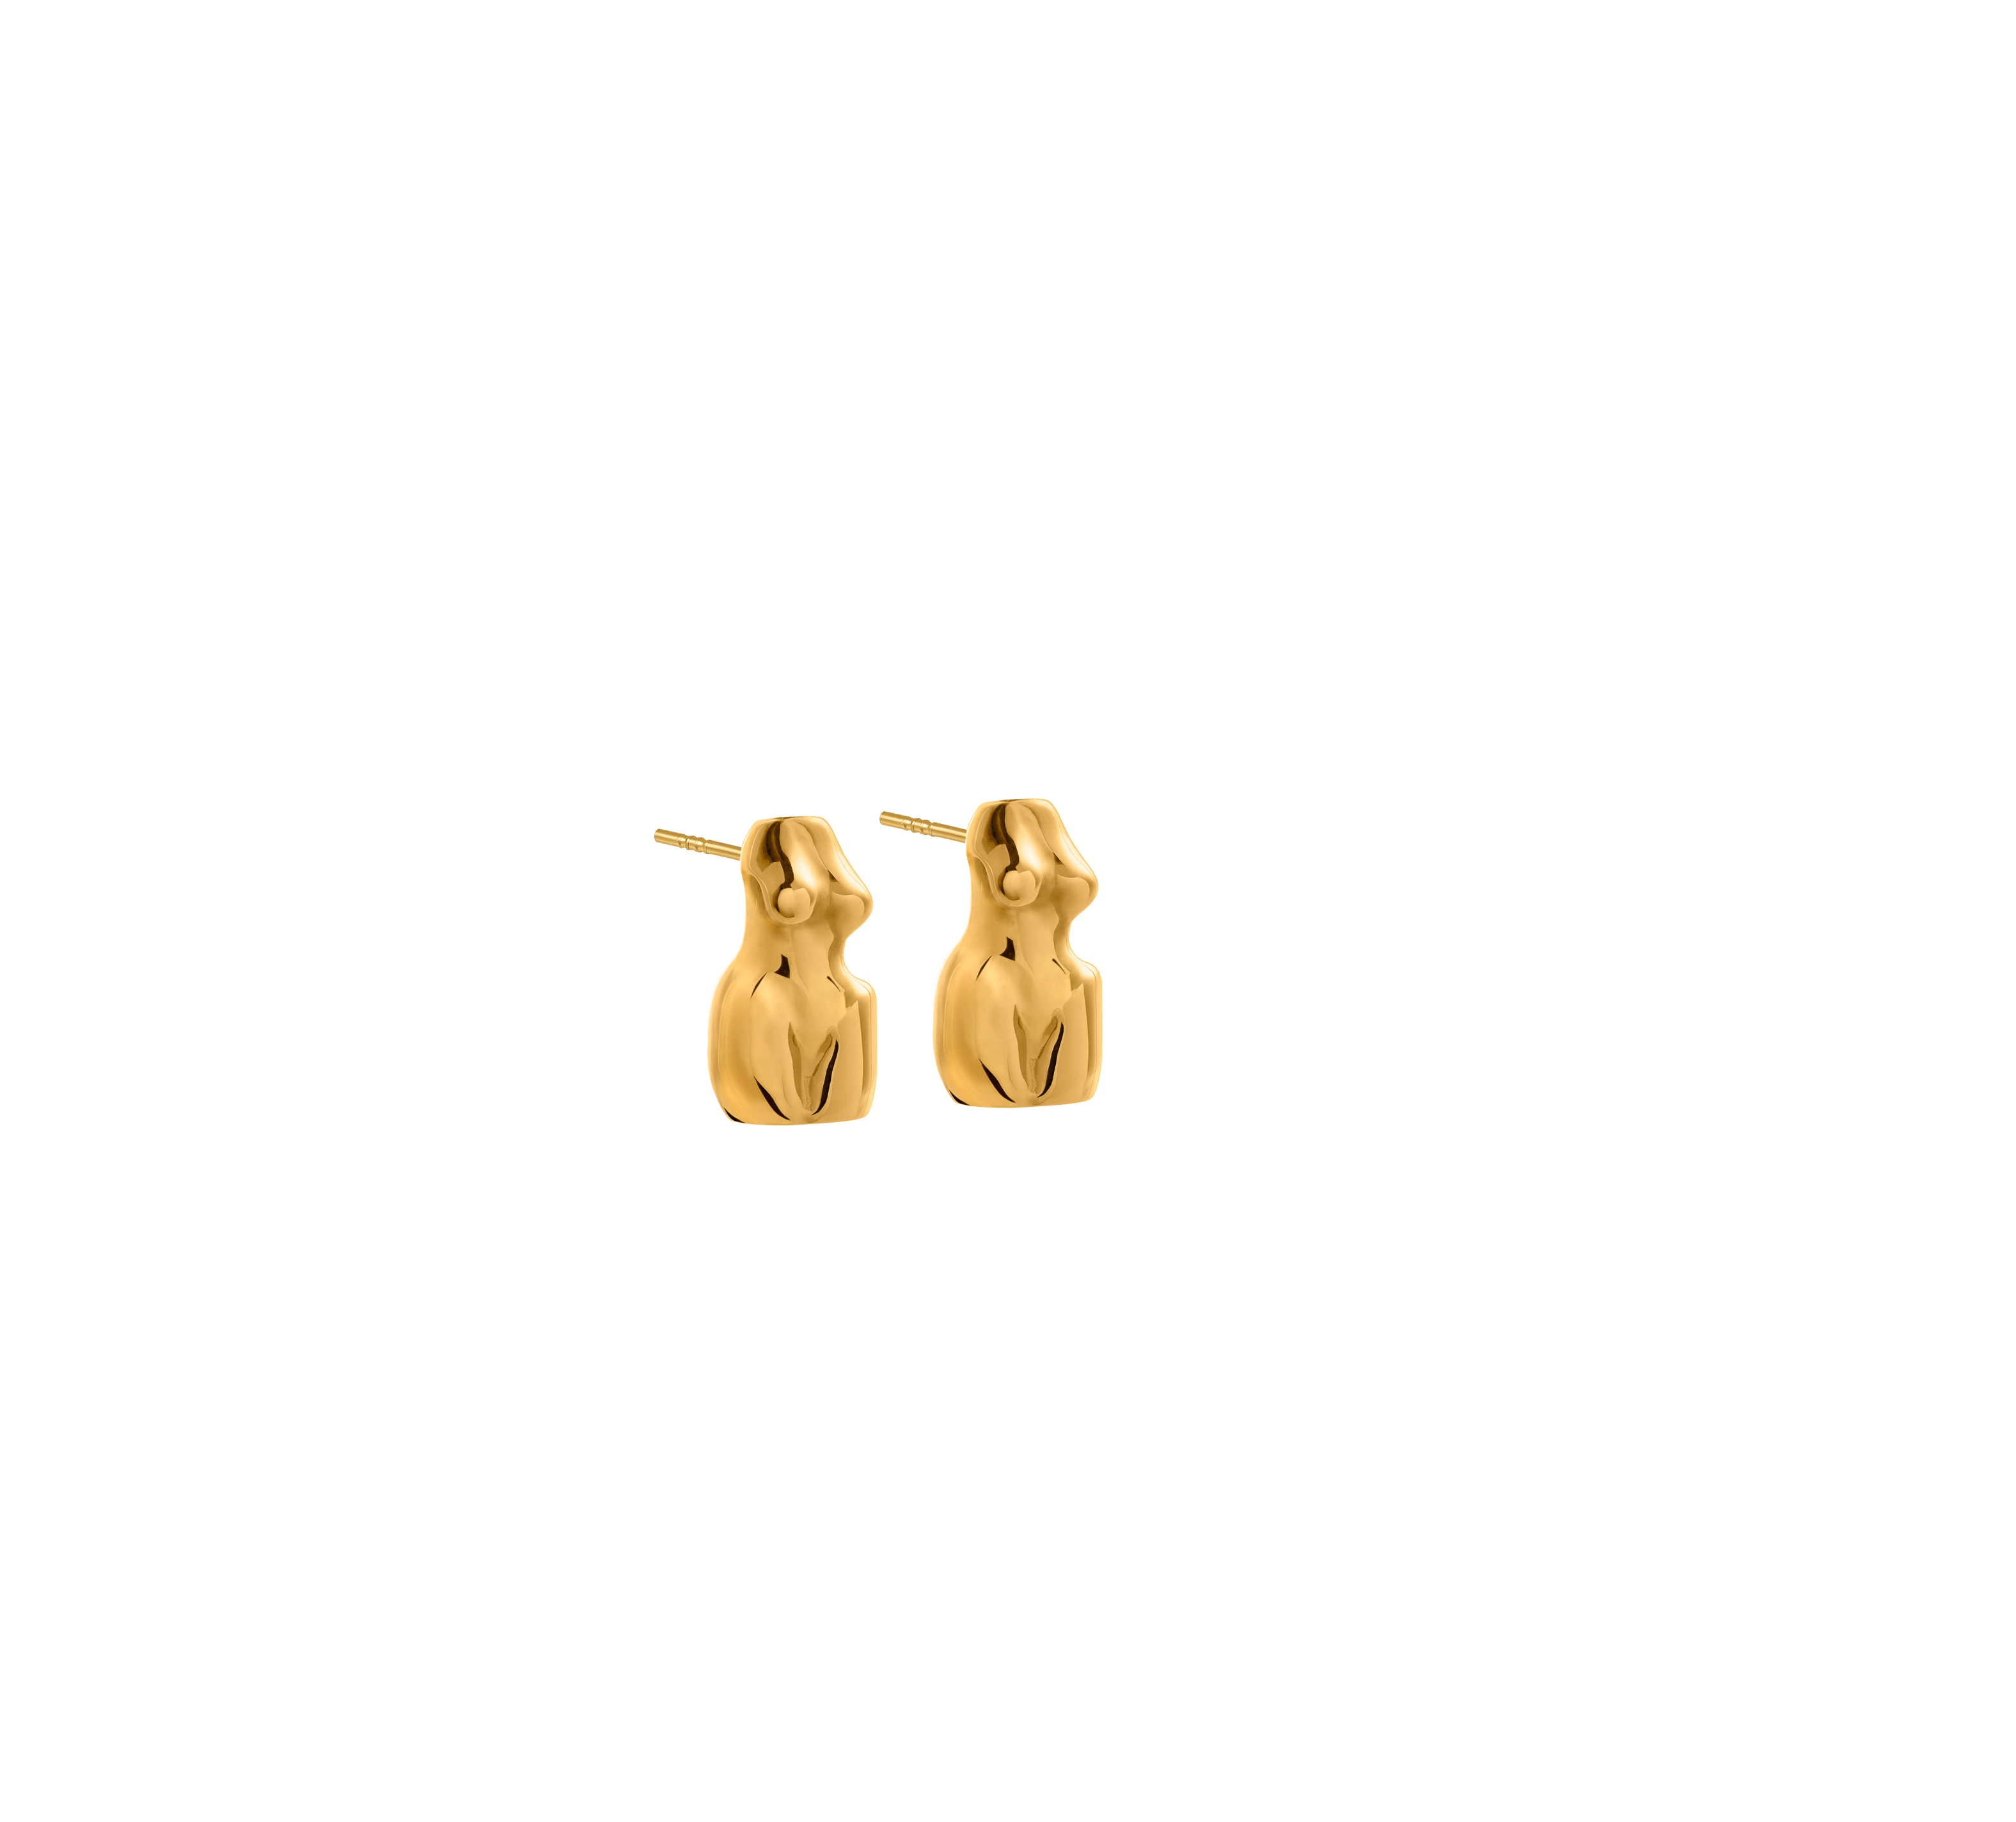 woman earrings 3D/gold